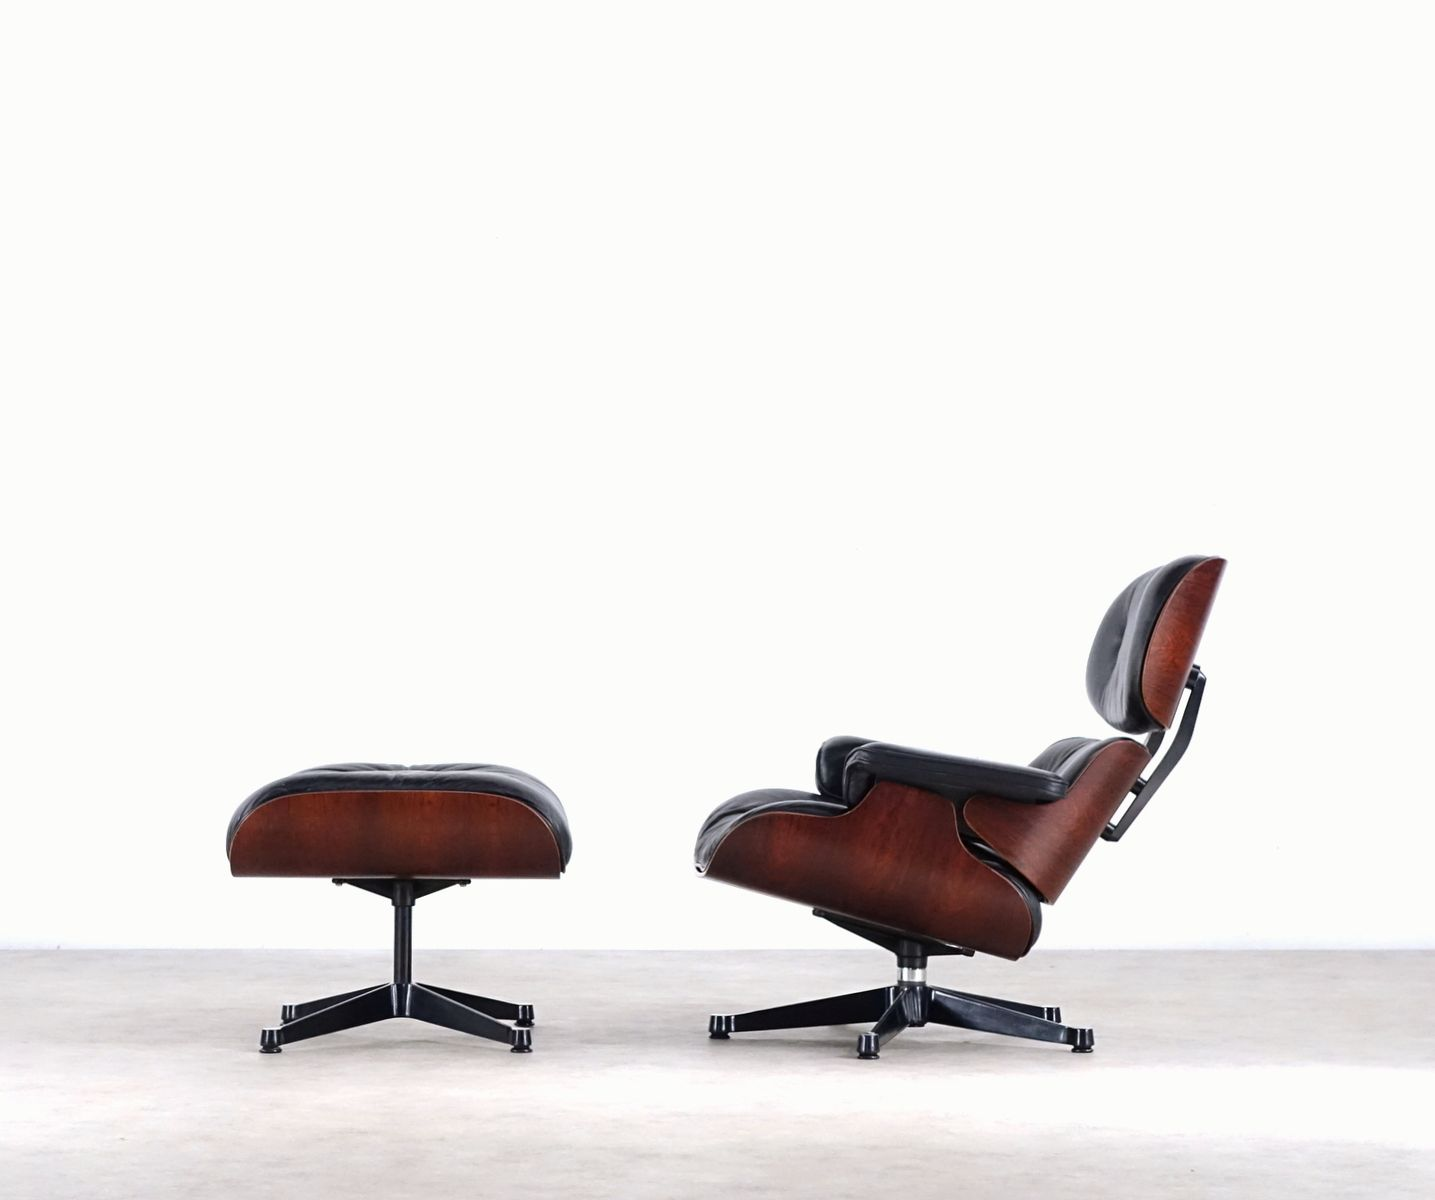 eames sessel und ottomane von charles ray eames f r. Black Bedroom Furniture Sets. Home Design Ideas